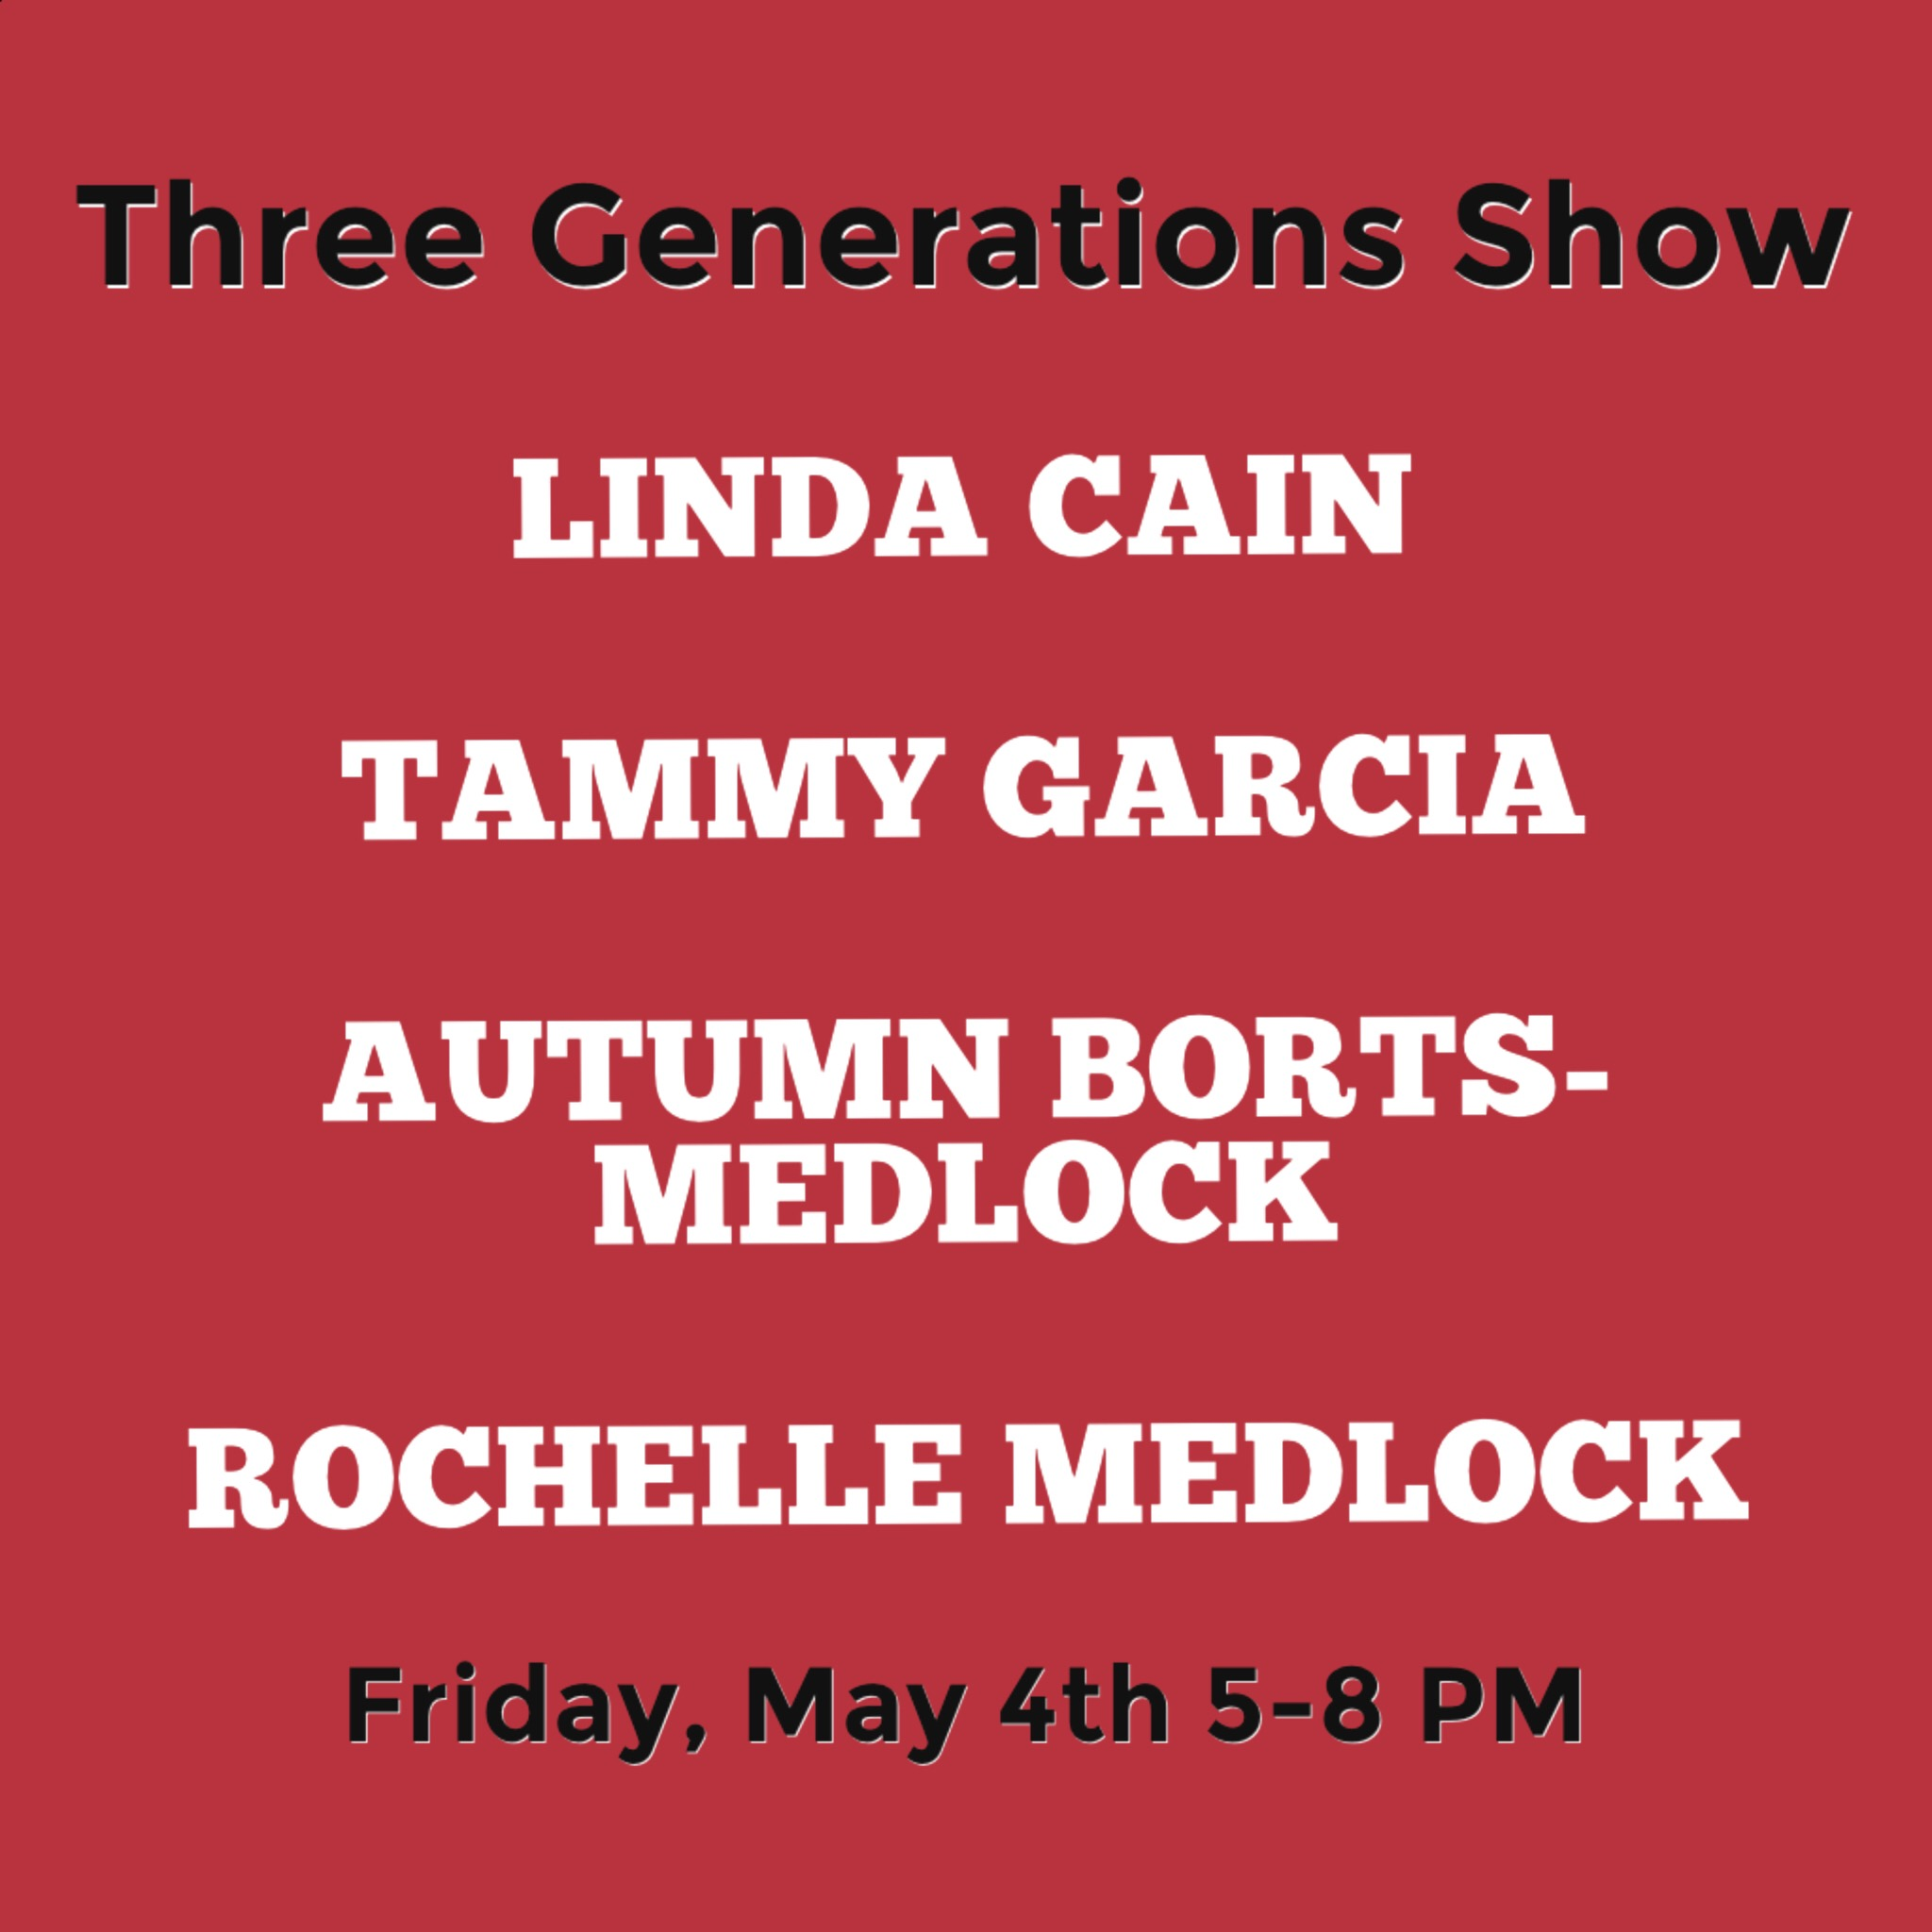 Join us for the  Three Generations Show